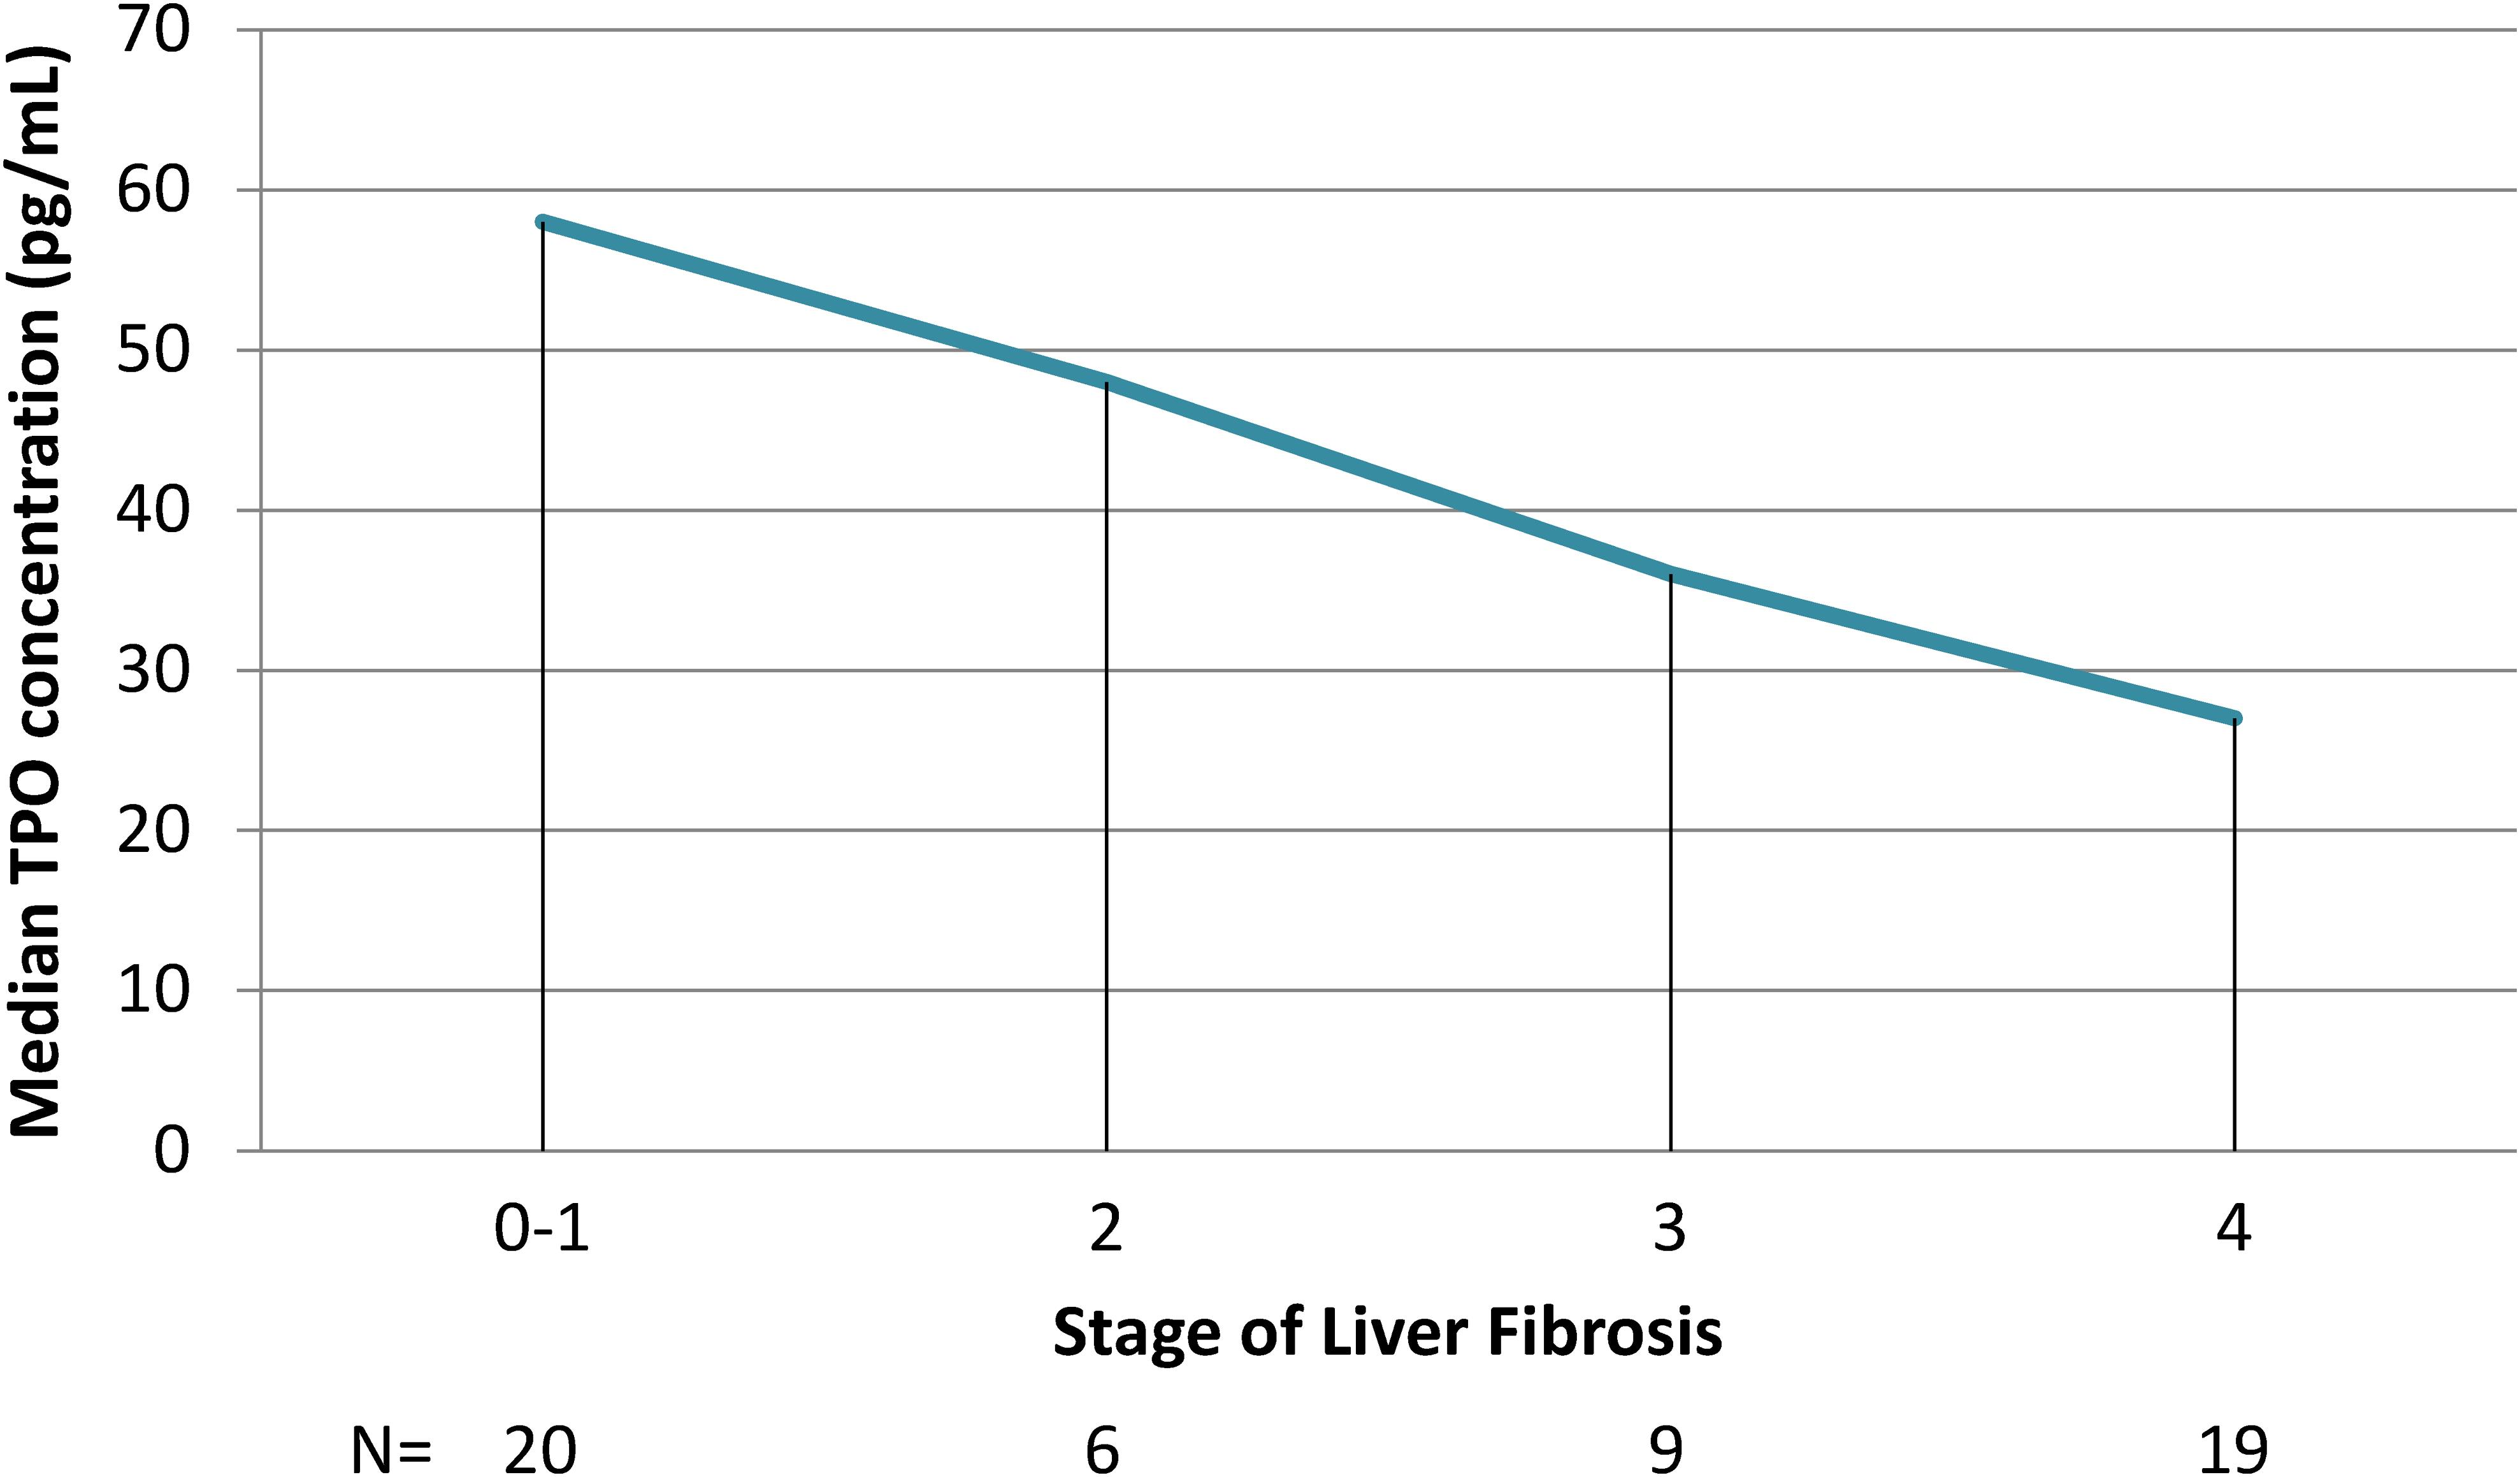 Relationship between serum thrombocytopenia concentration and liver fibrosis.